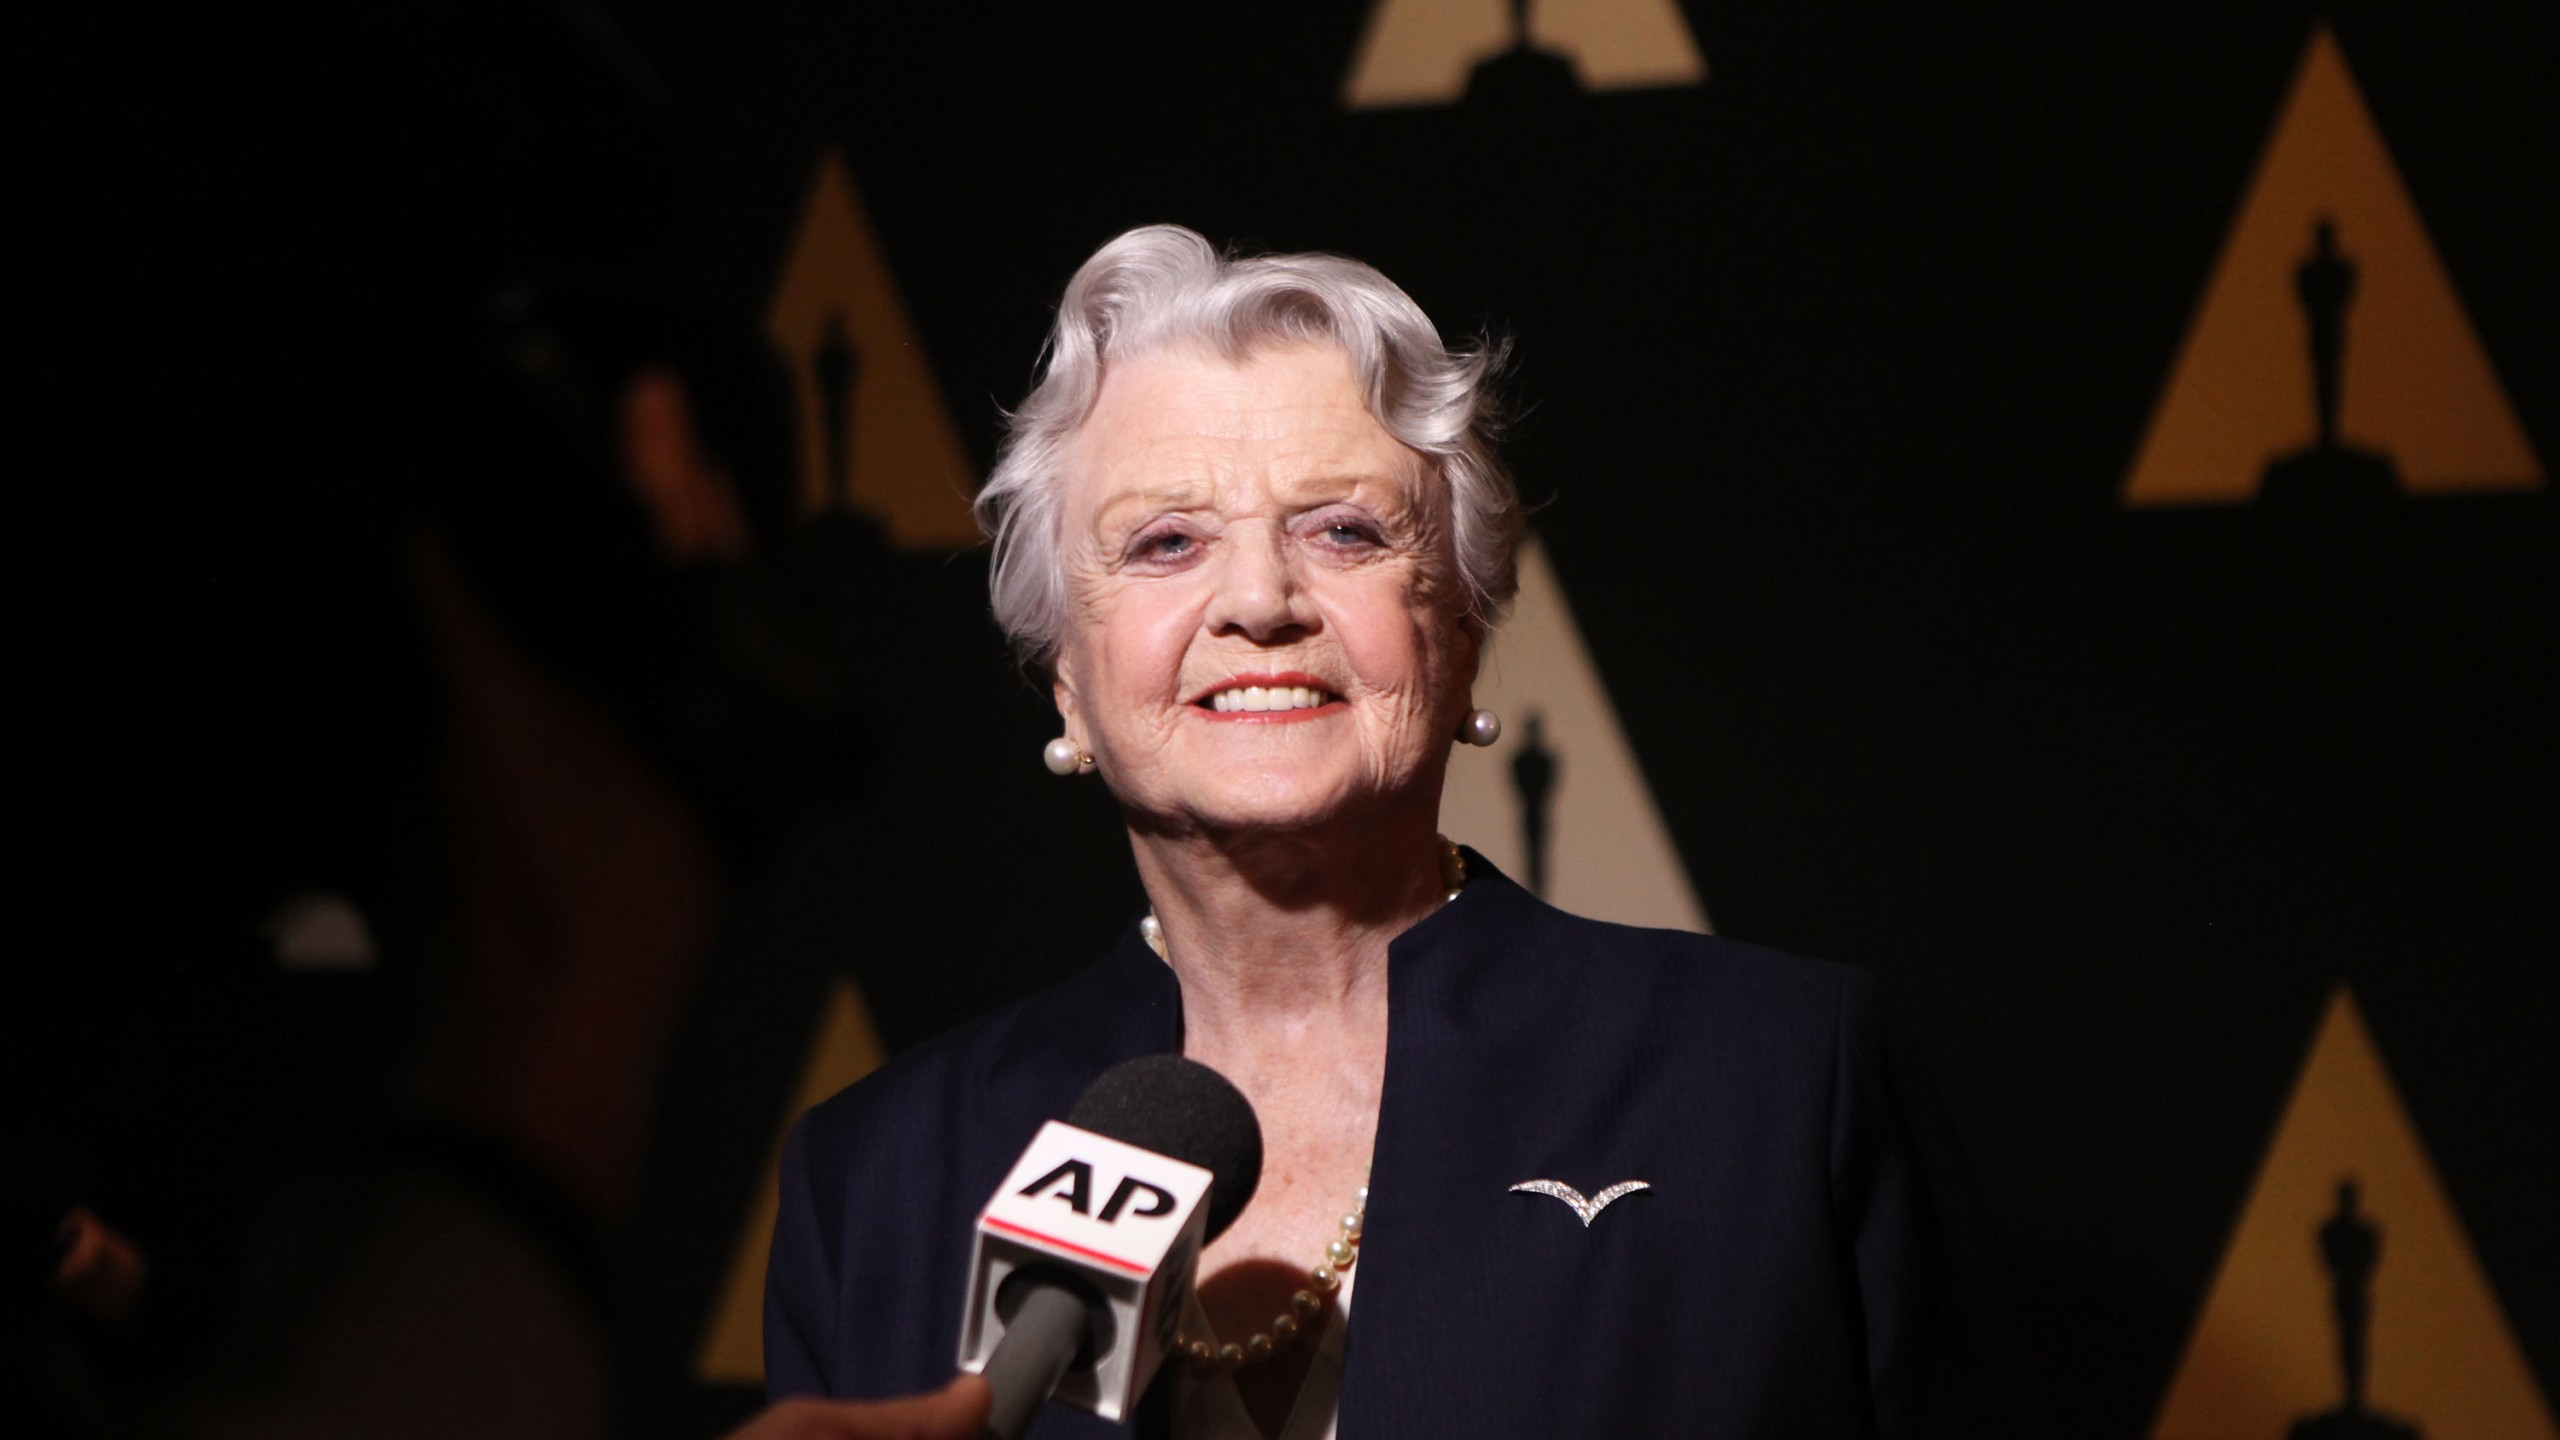 """Actress Angela Lansbury attends the 25th-anniversary screening of """"Beauty and the Beast"""" on May 9, 2016, in Beverly Hills. (Credit: Matt Winkelmeyer / Getty Images)"""